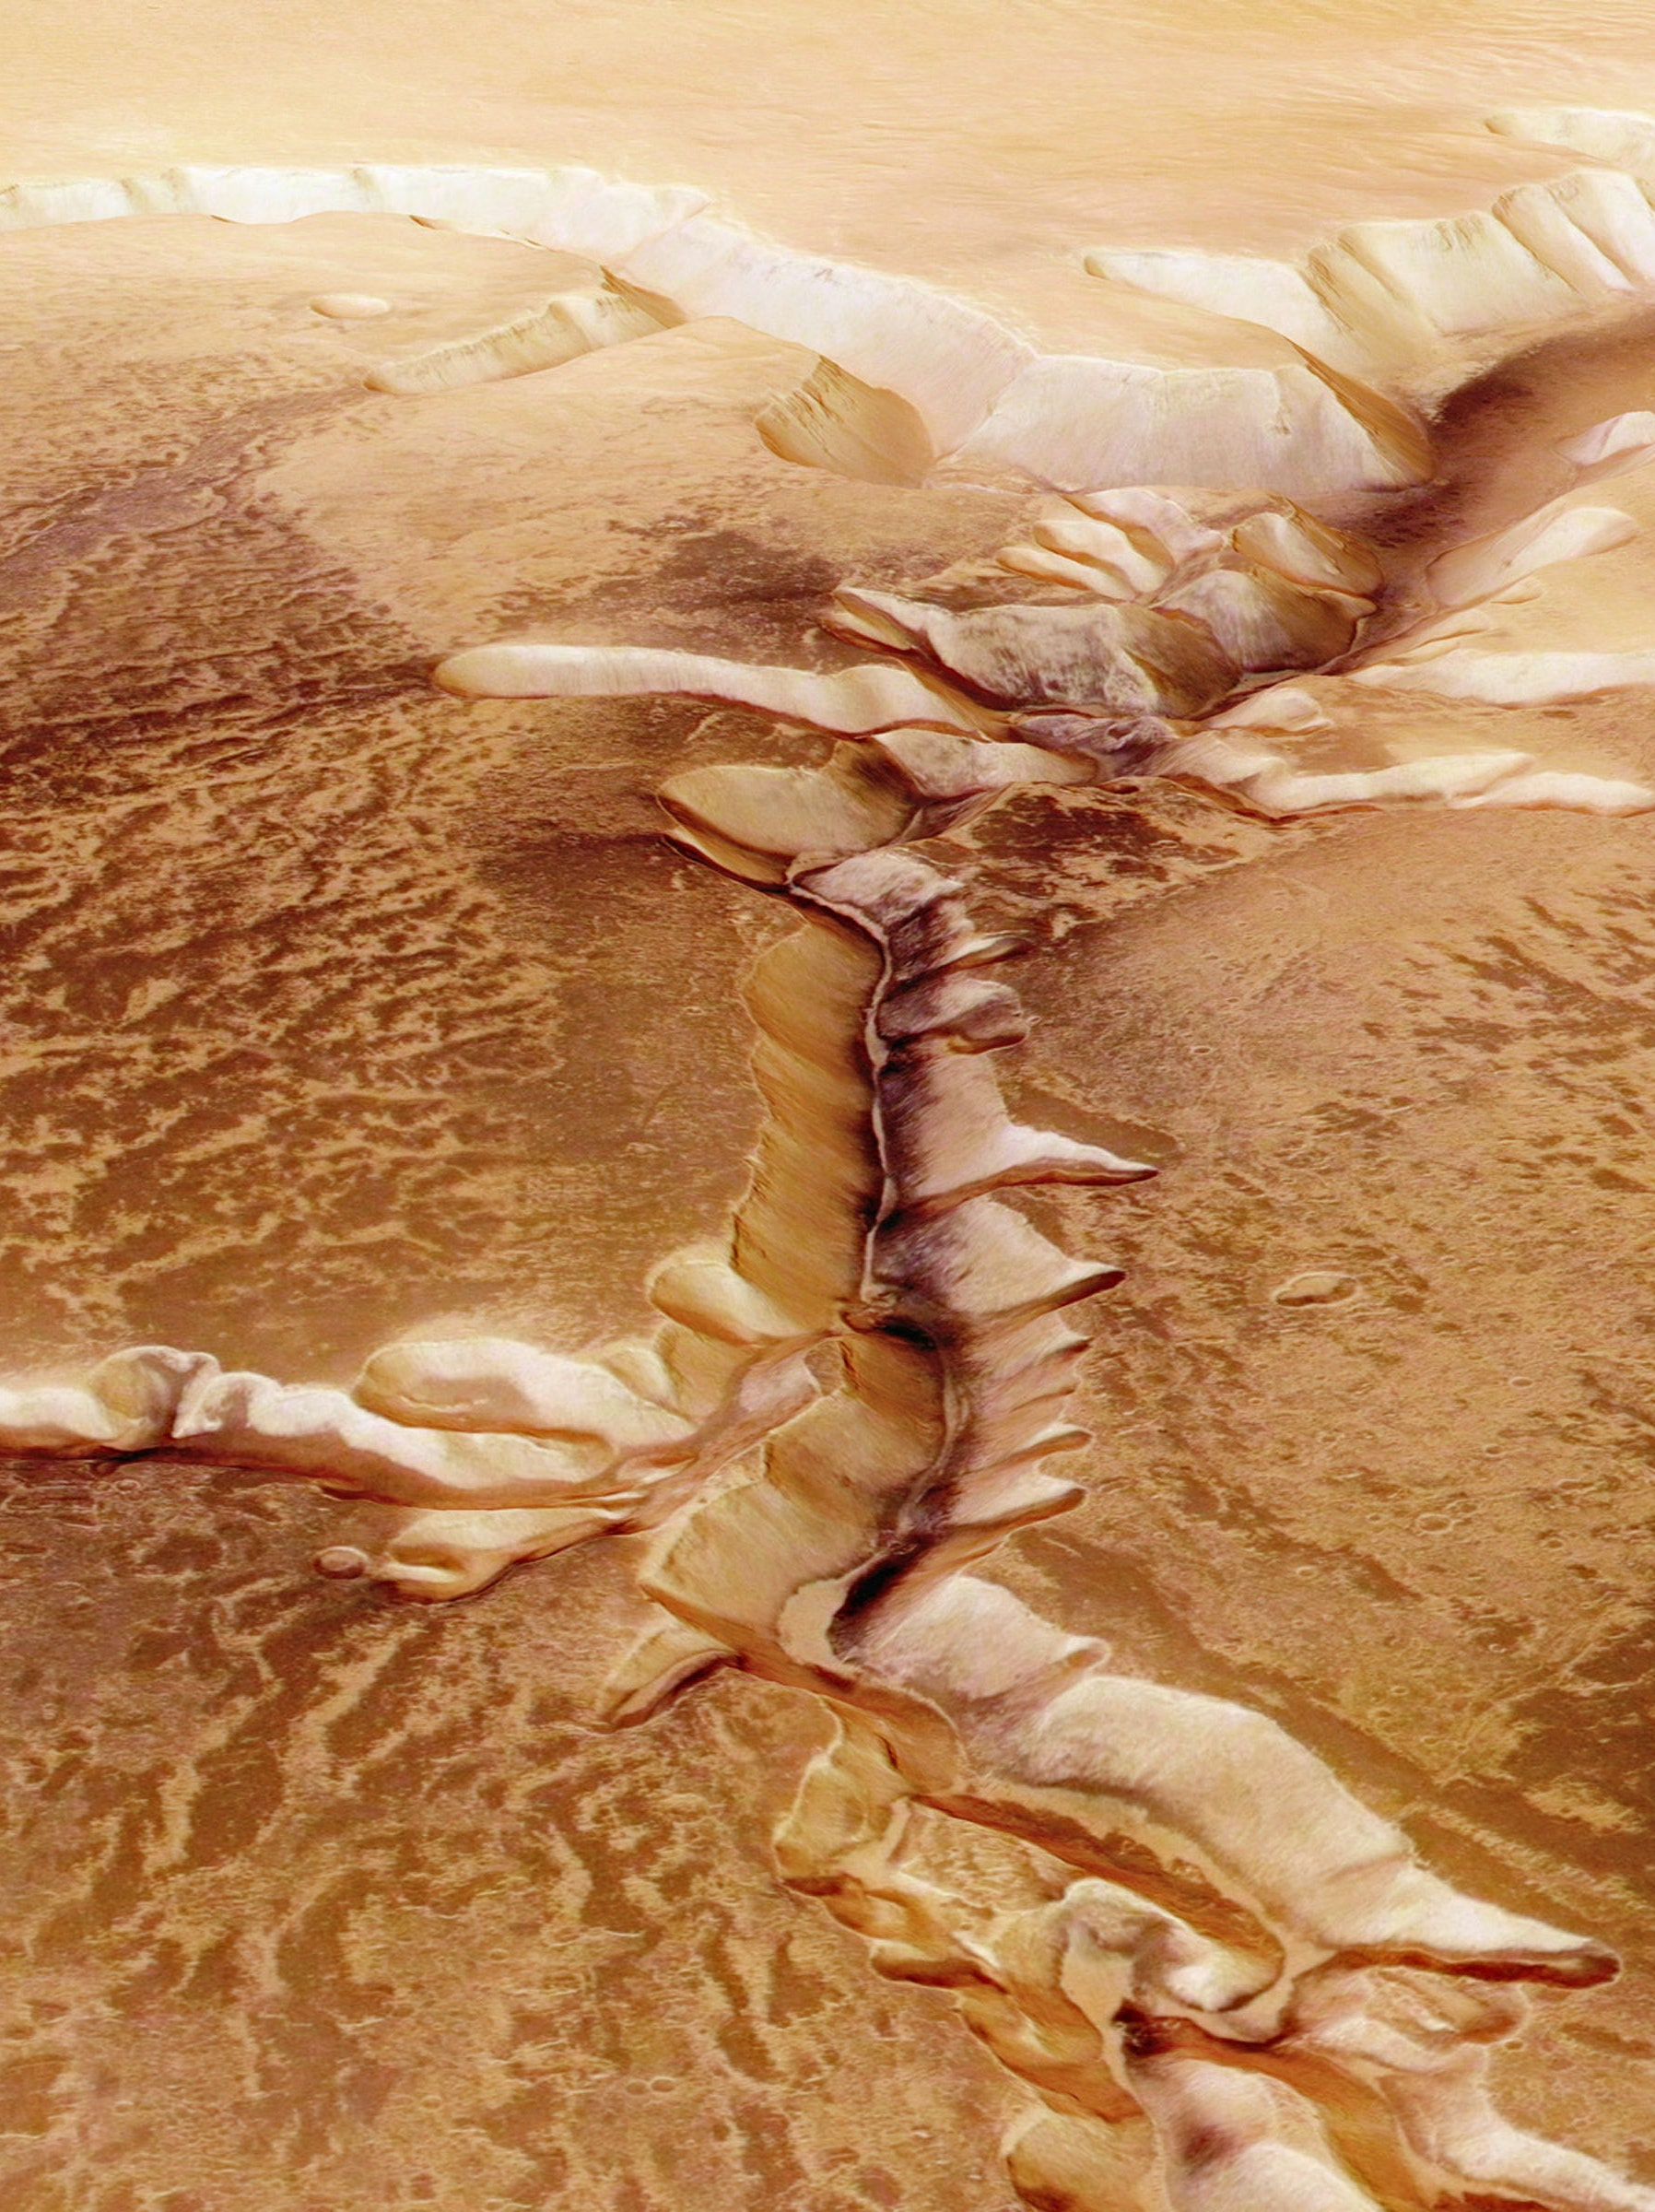 A view of the Echus Chasma, one of the largest water source regions on Mars, seen by ESA's Mars Express.